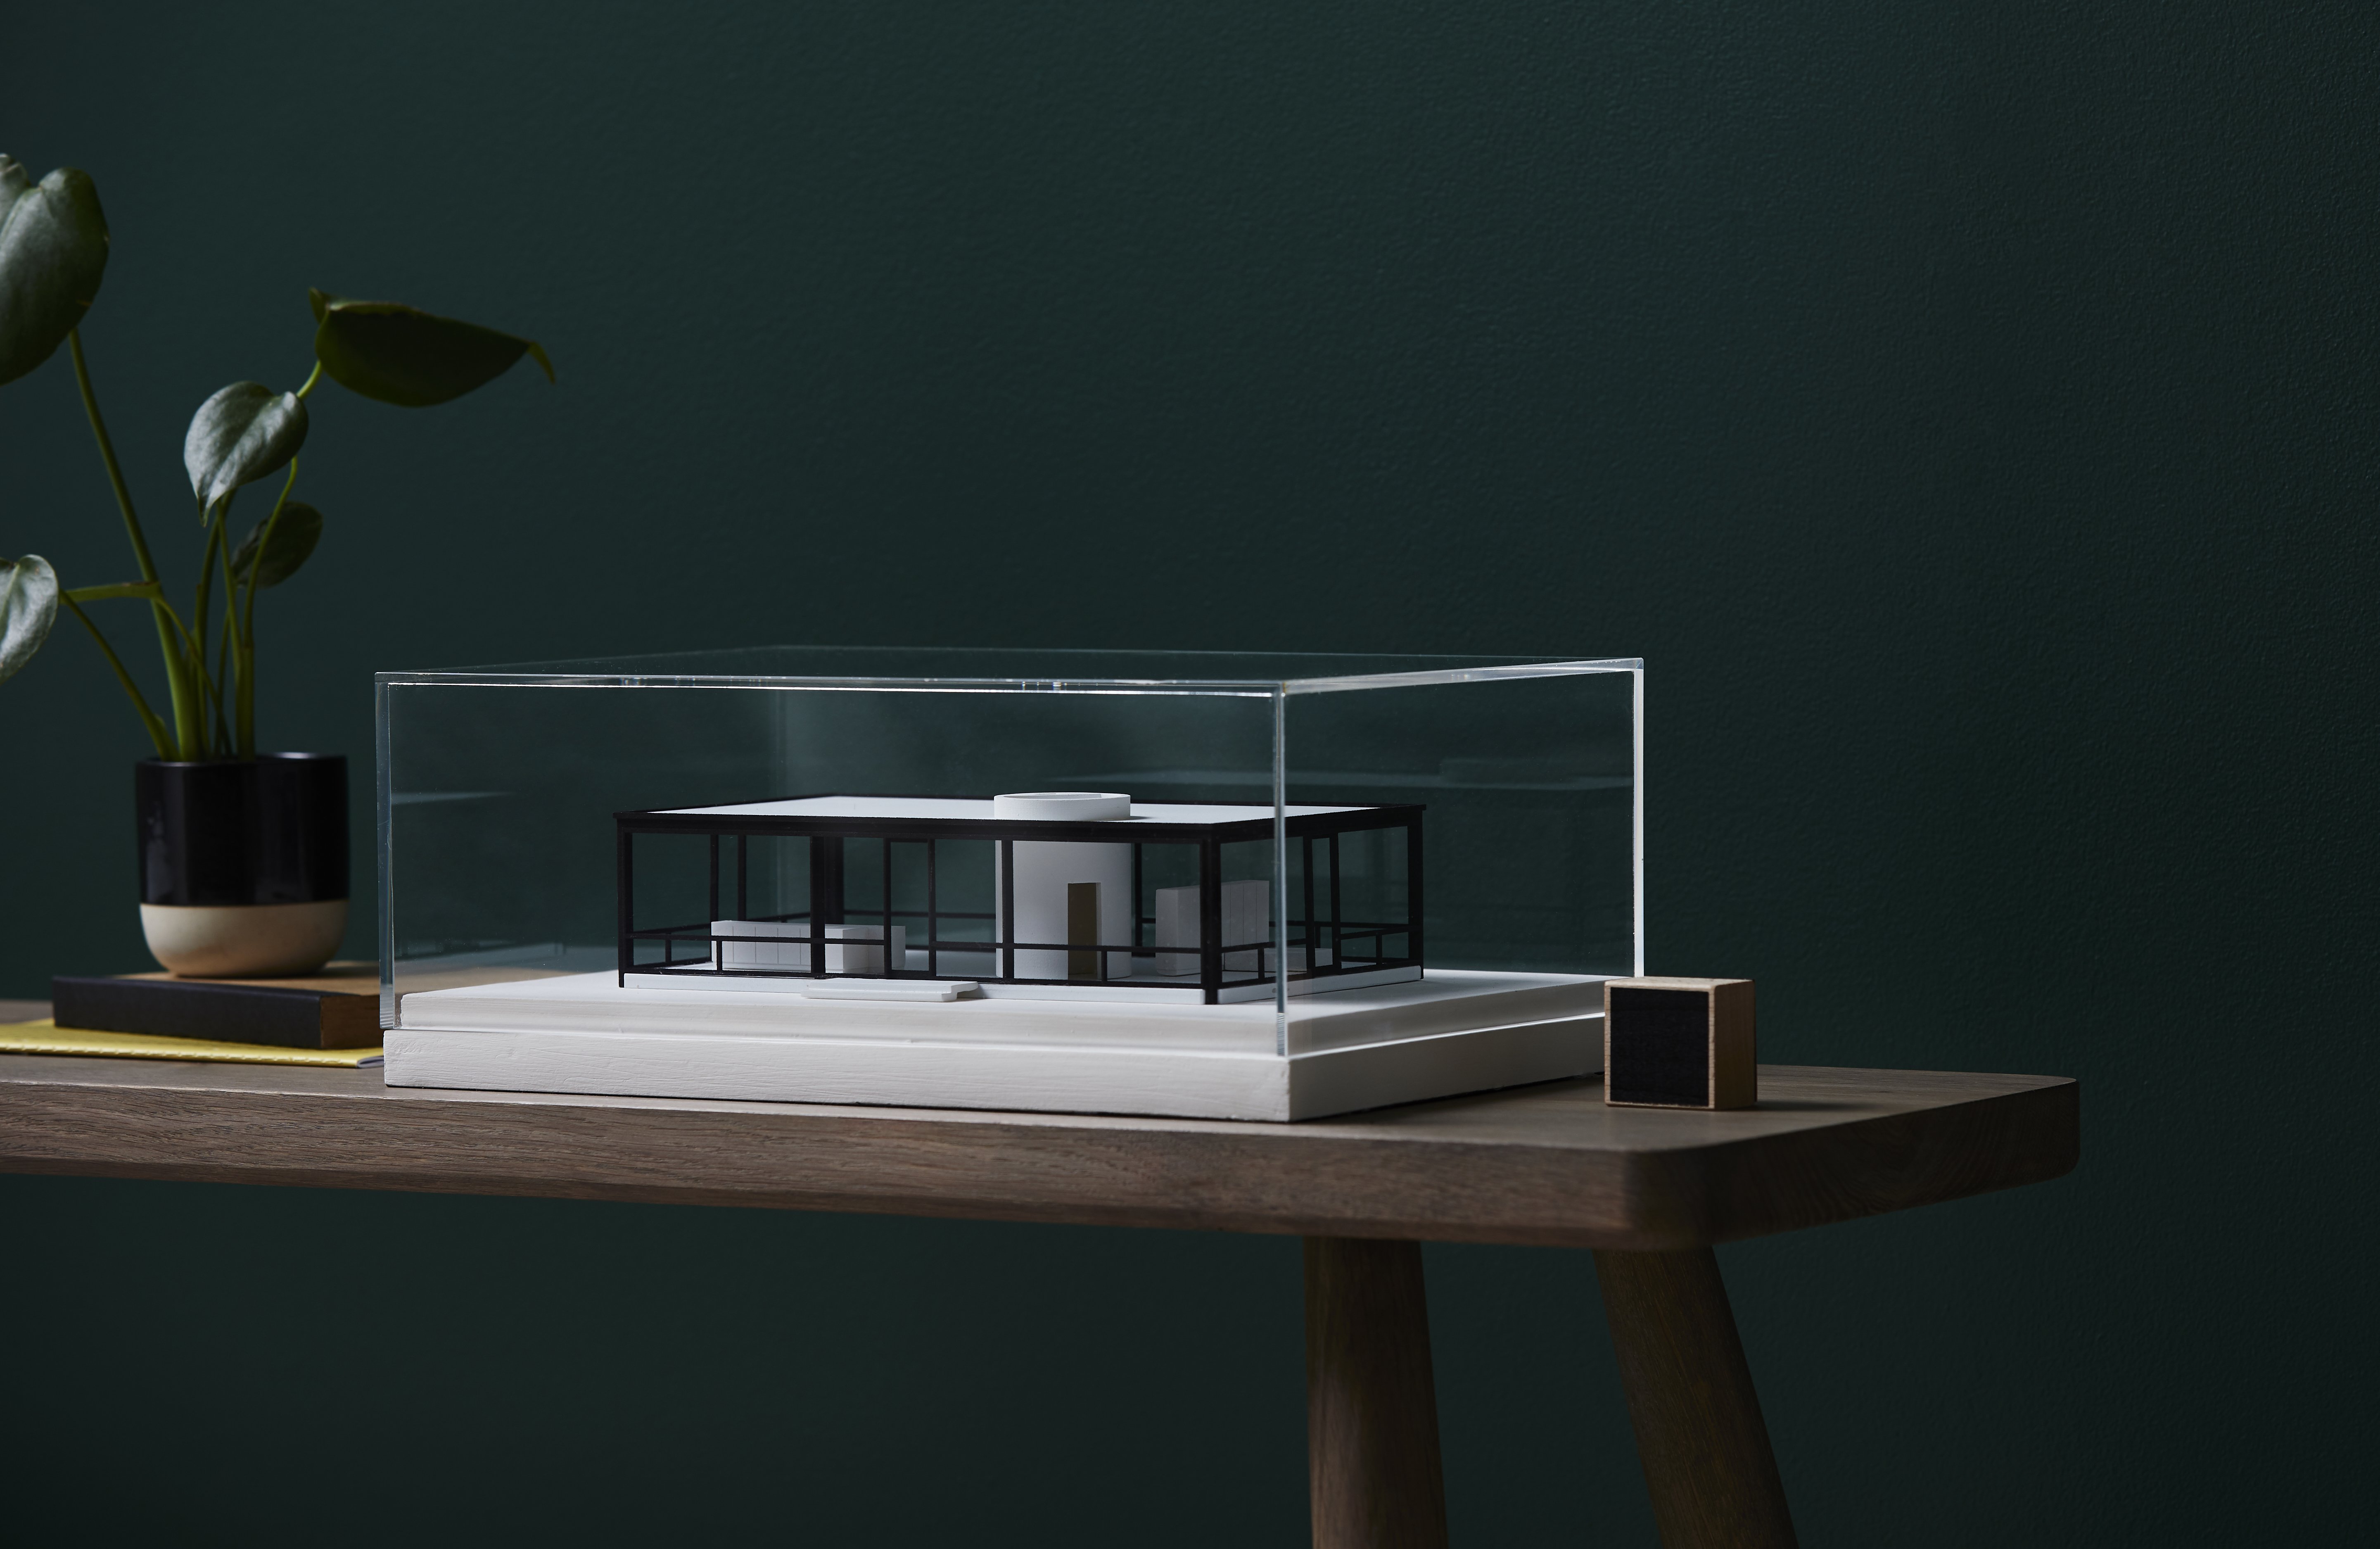 You can own a miniature replica of the Glass House for $1,550